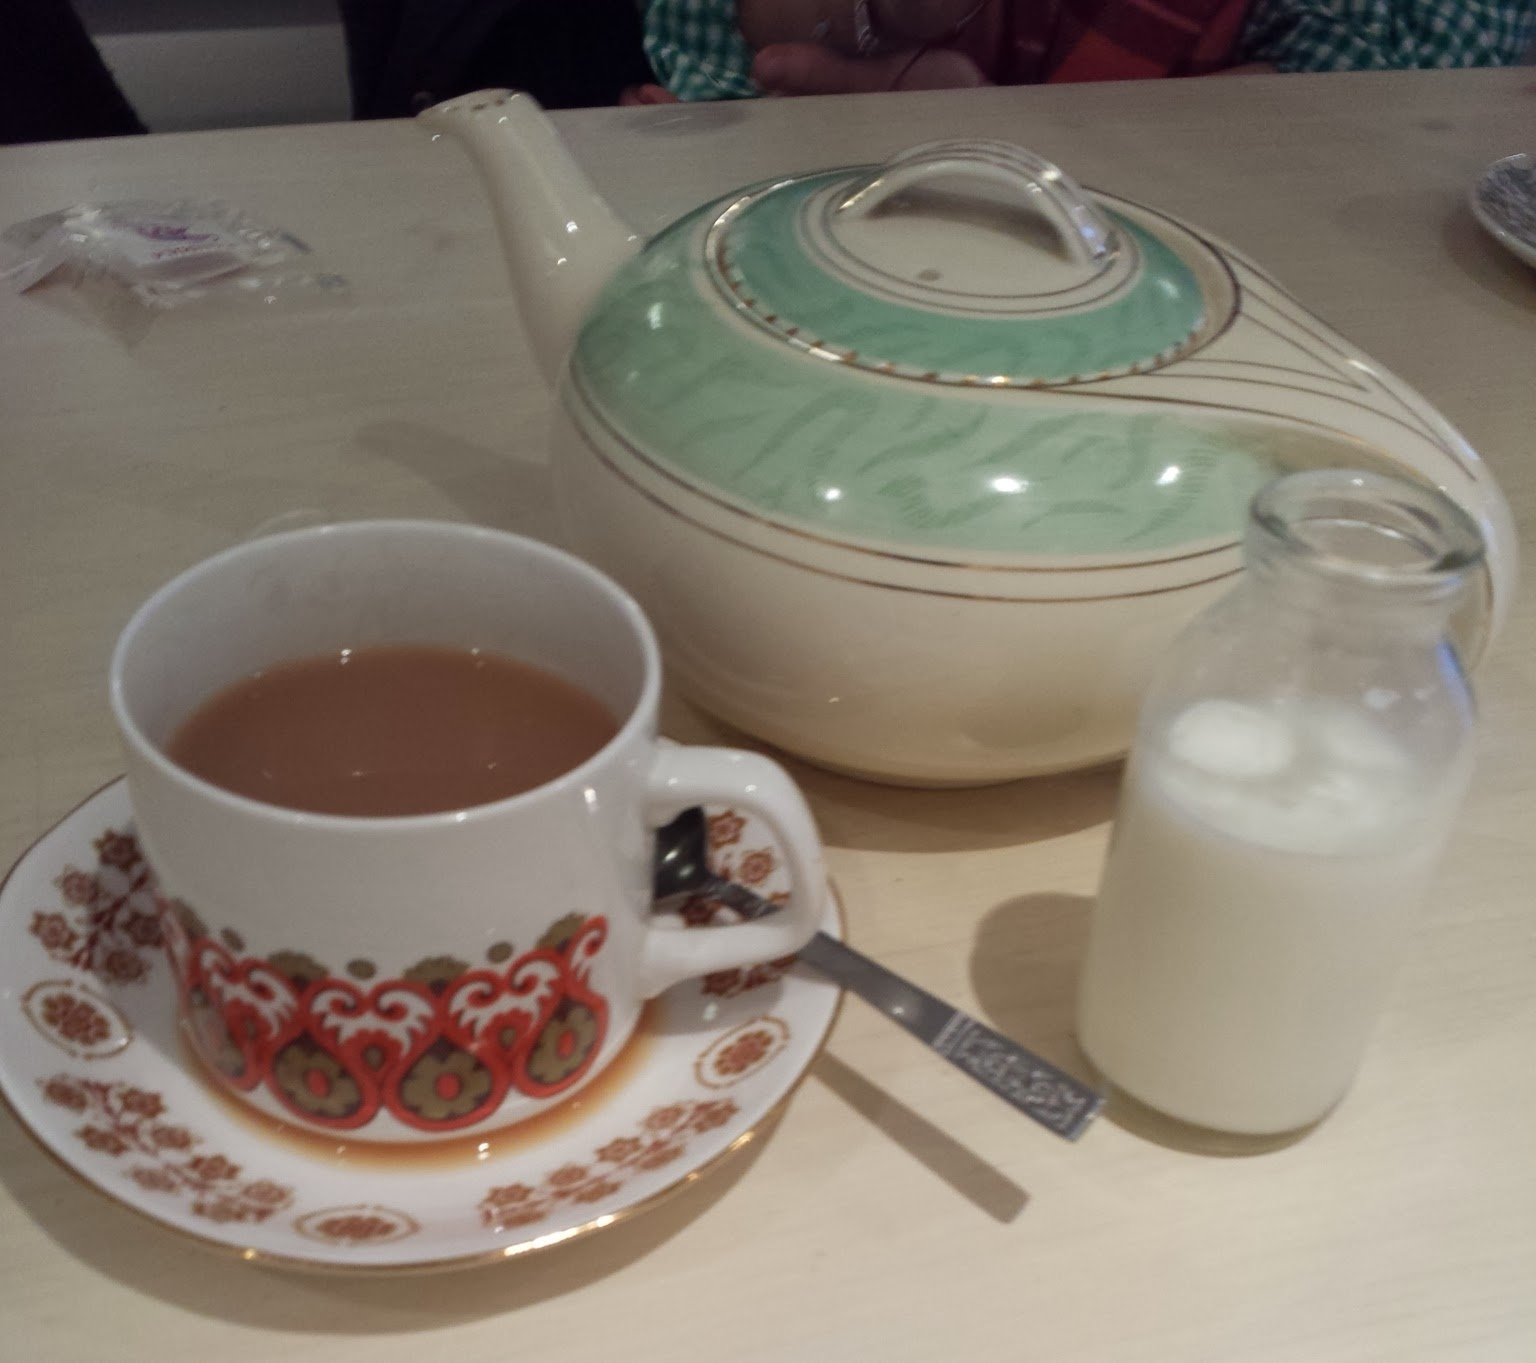 tea served in vintage china with little milk bottle